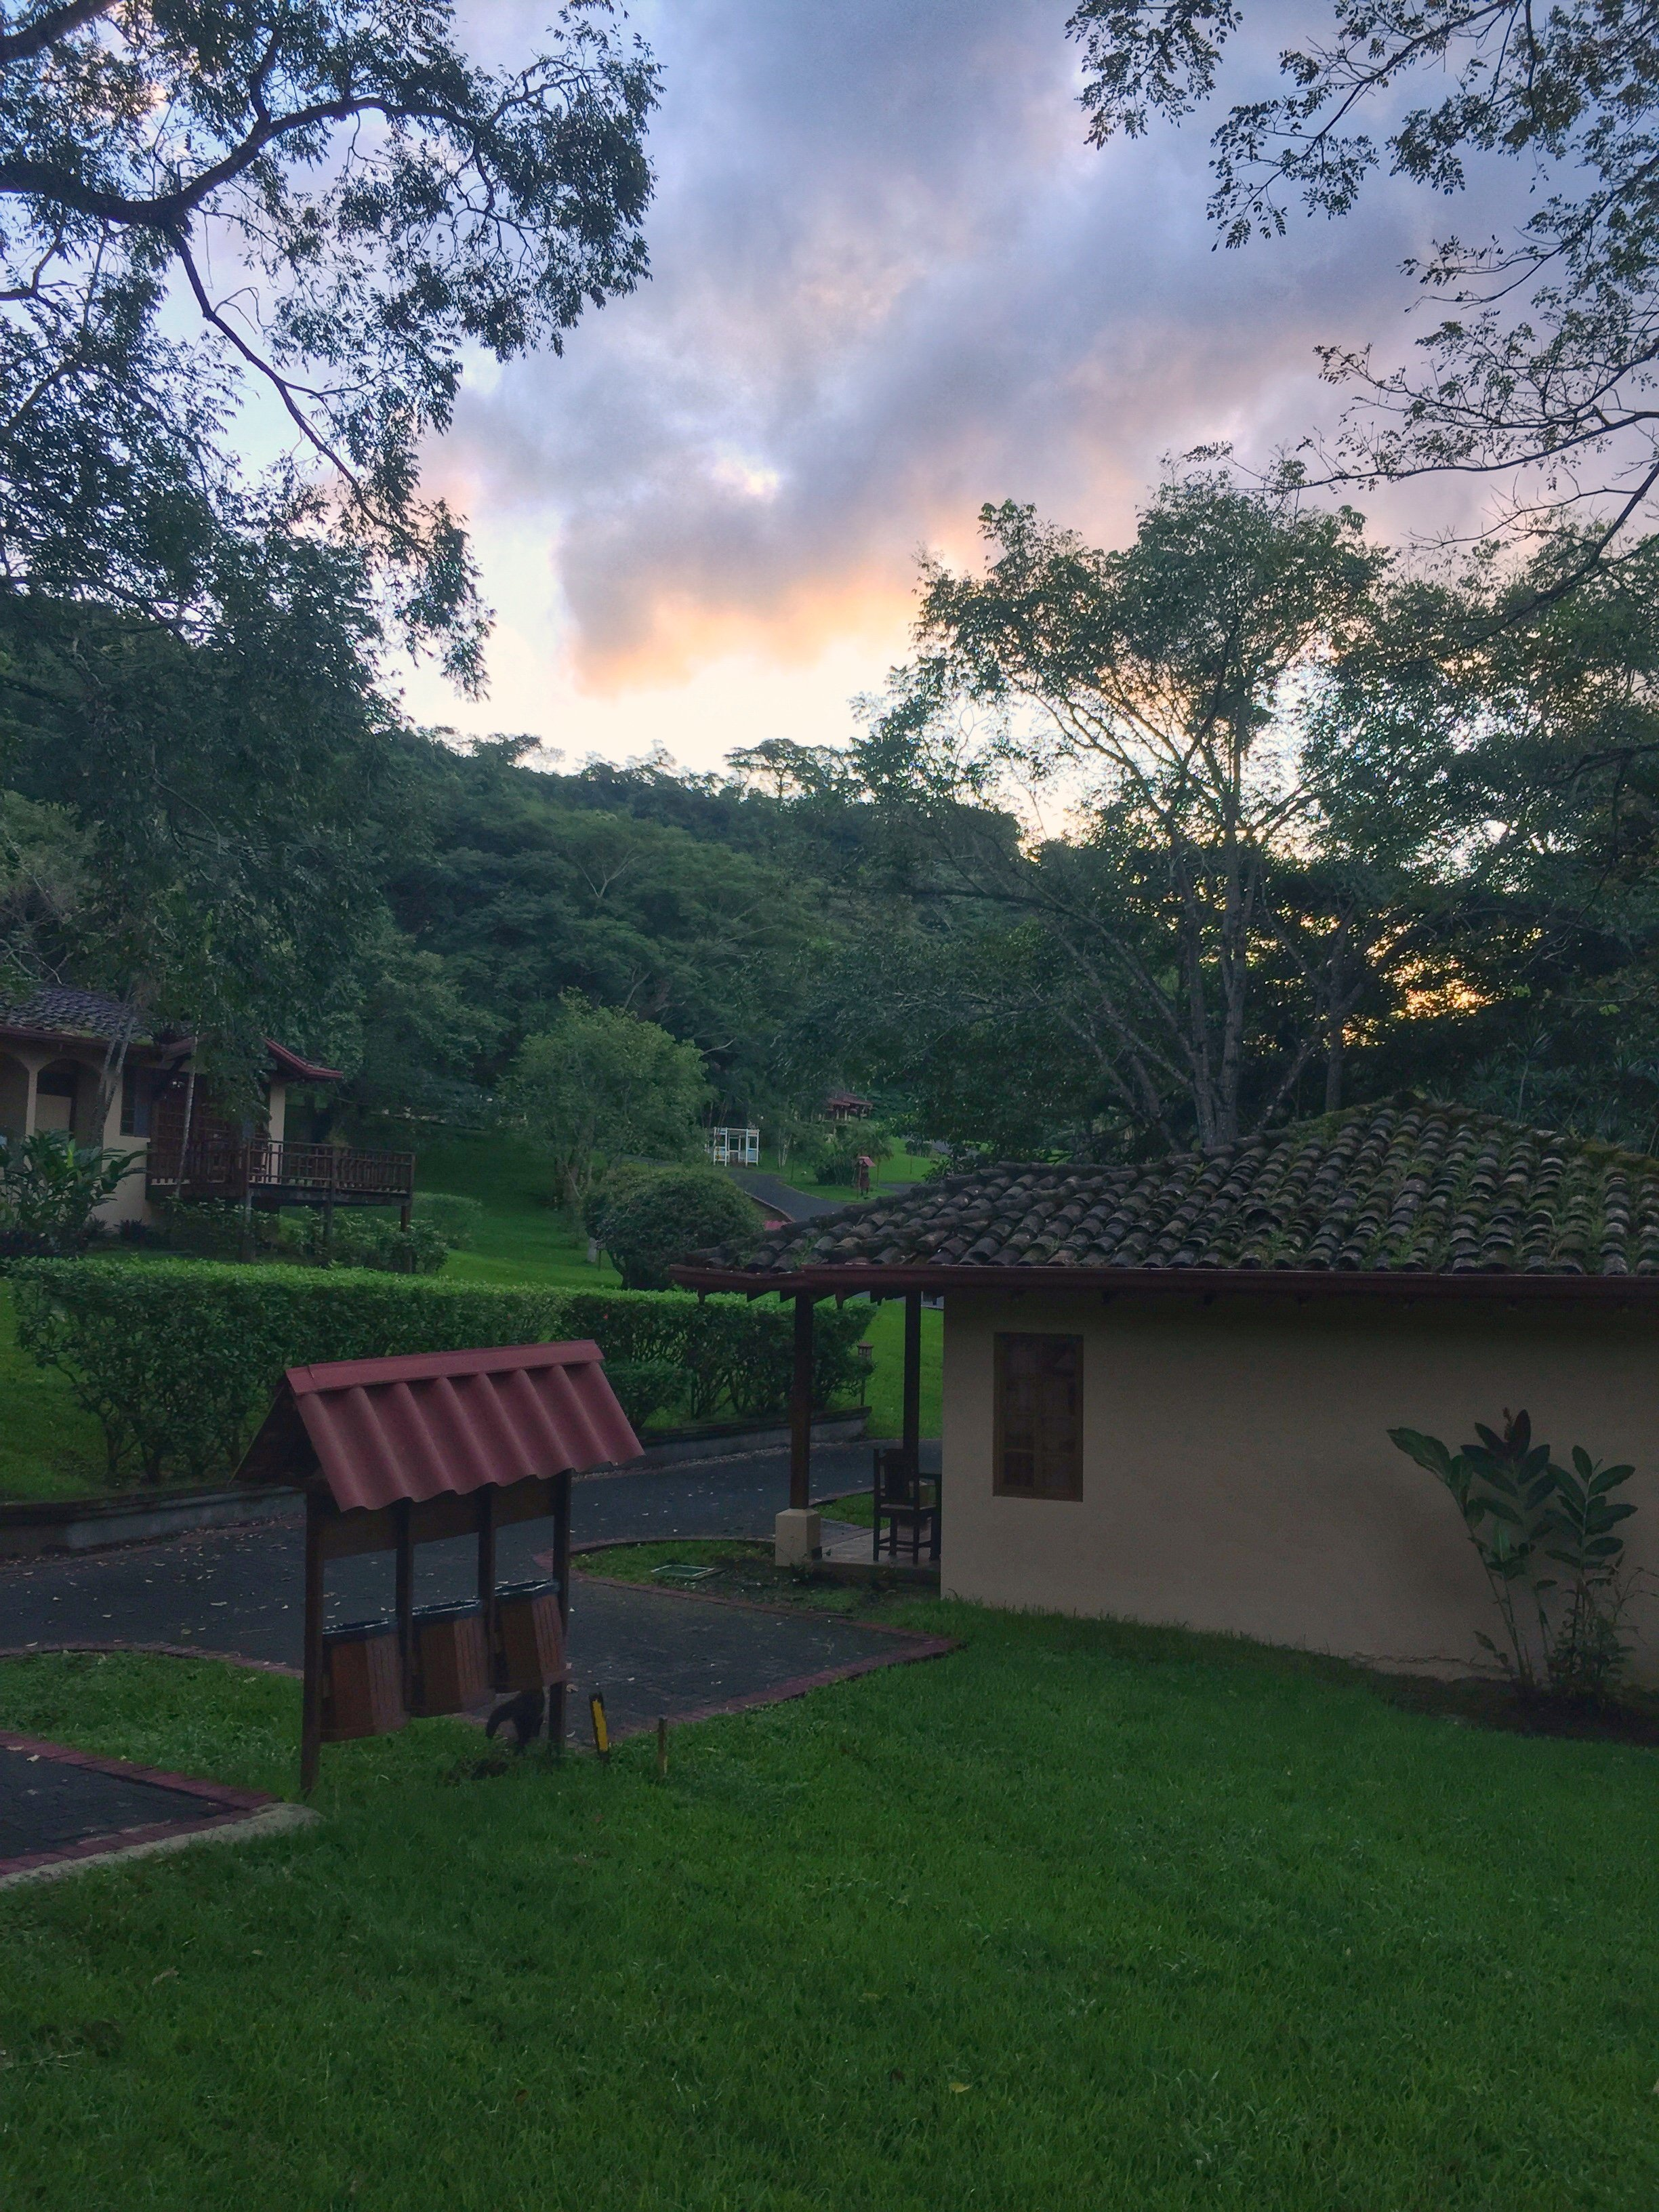 Sunrise at Borinquen Mountain Resort